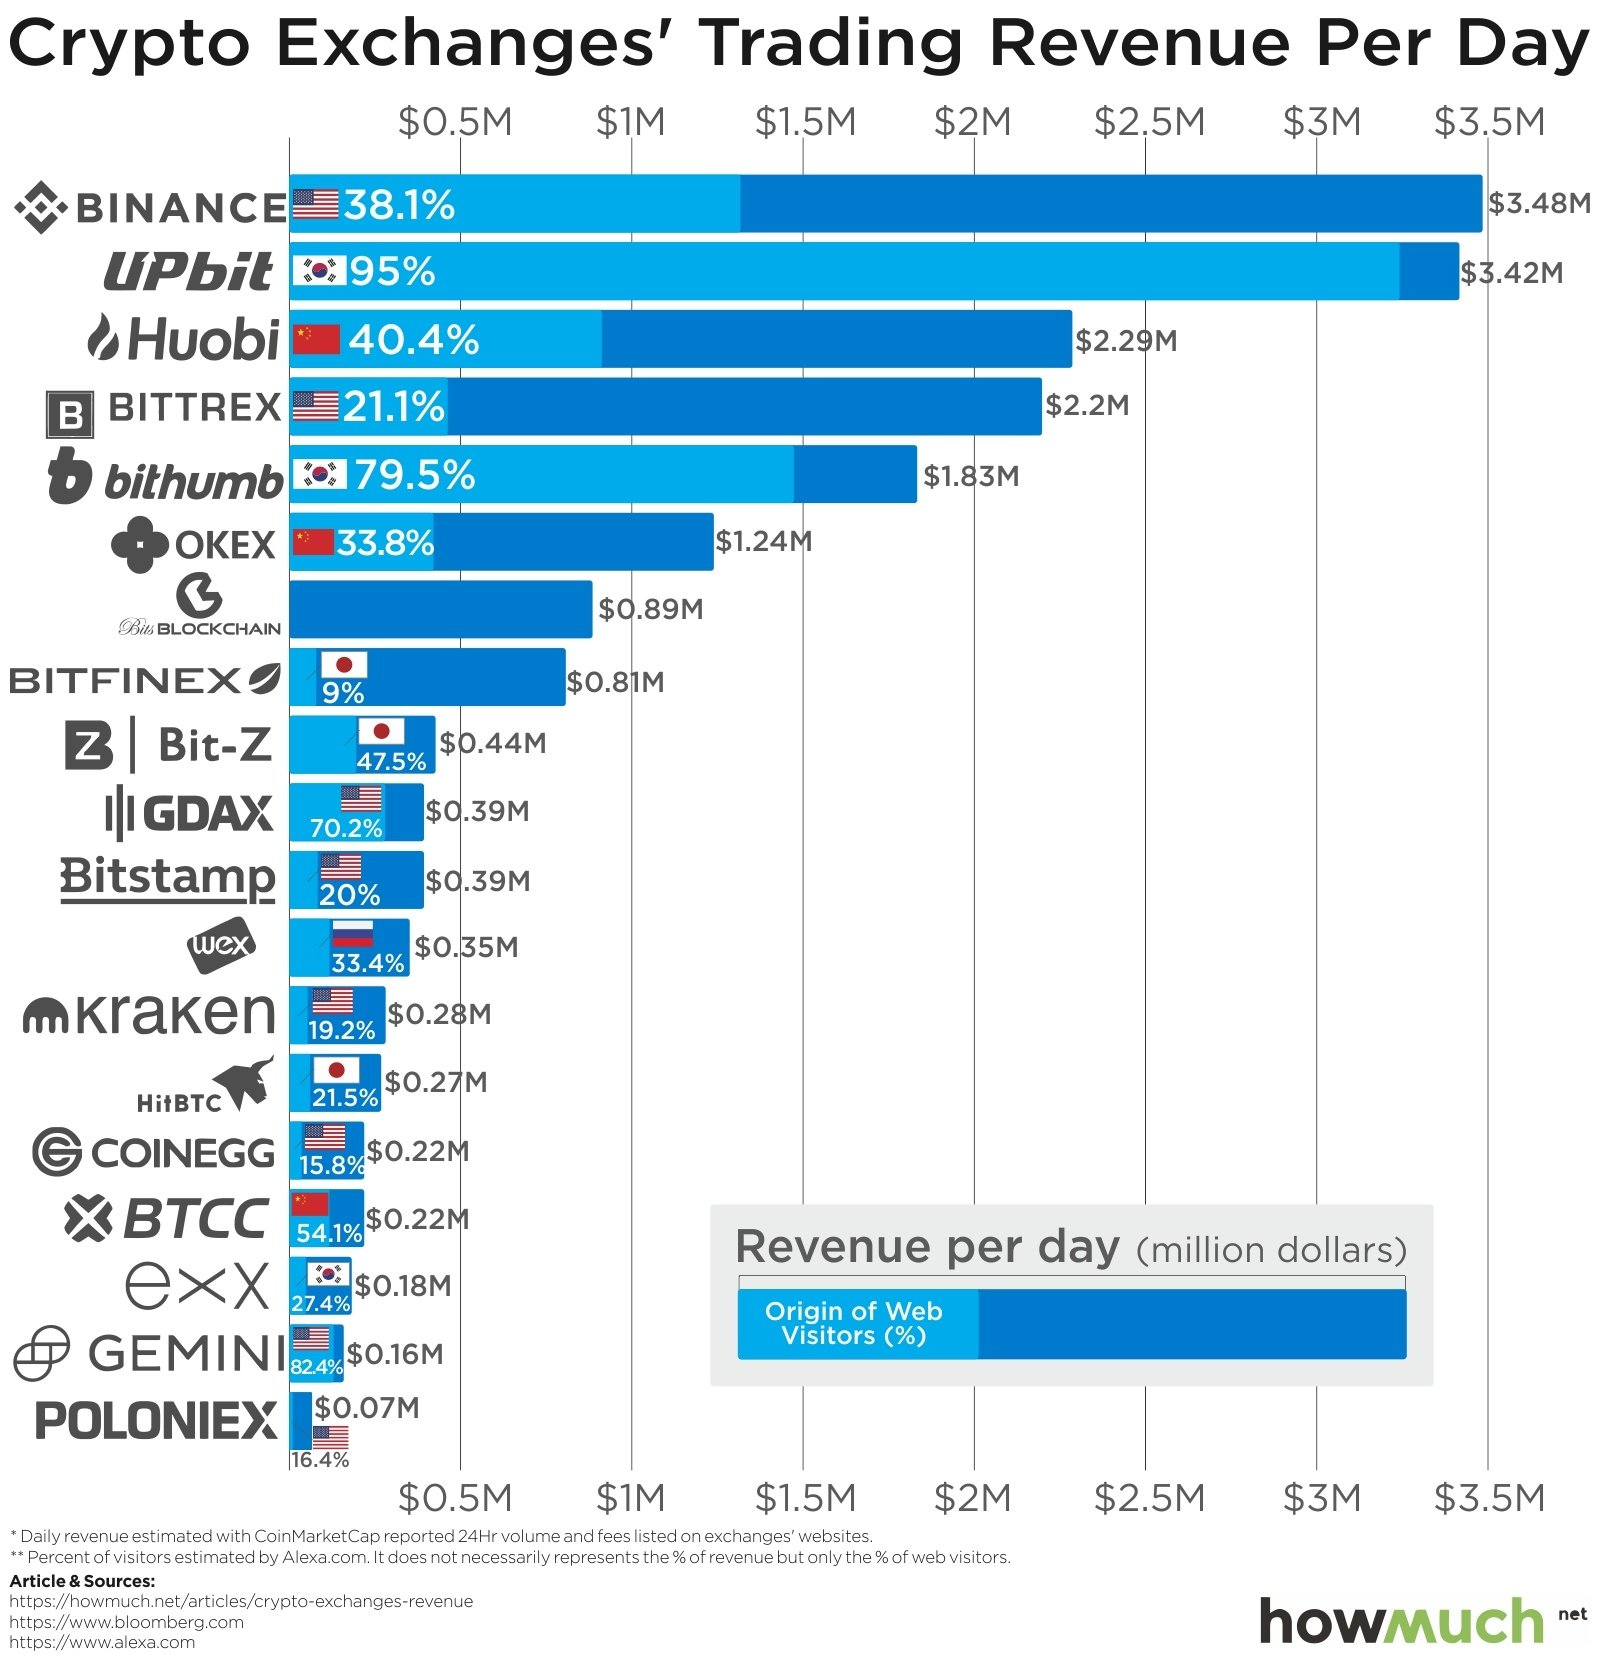 what are some cryptocurrency exchanges to trade crypto on